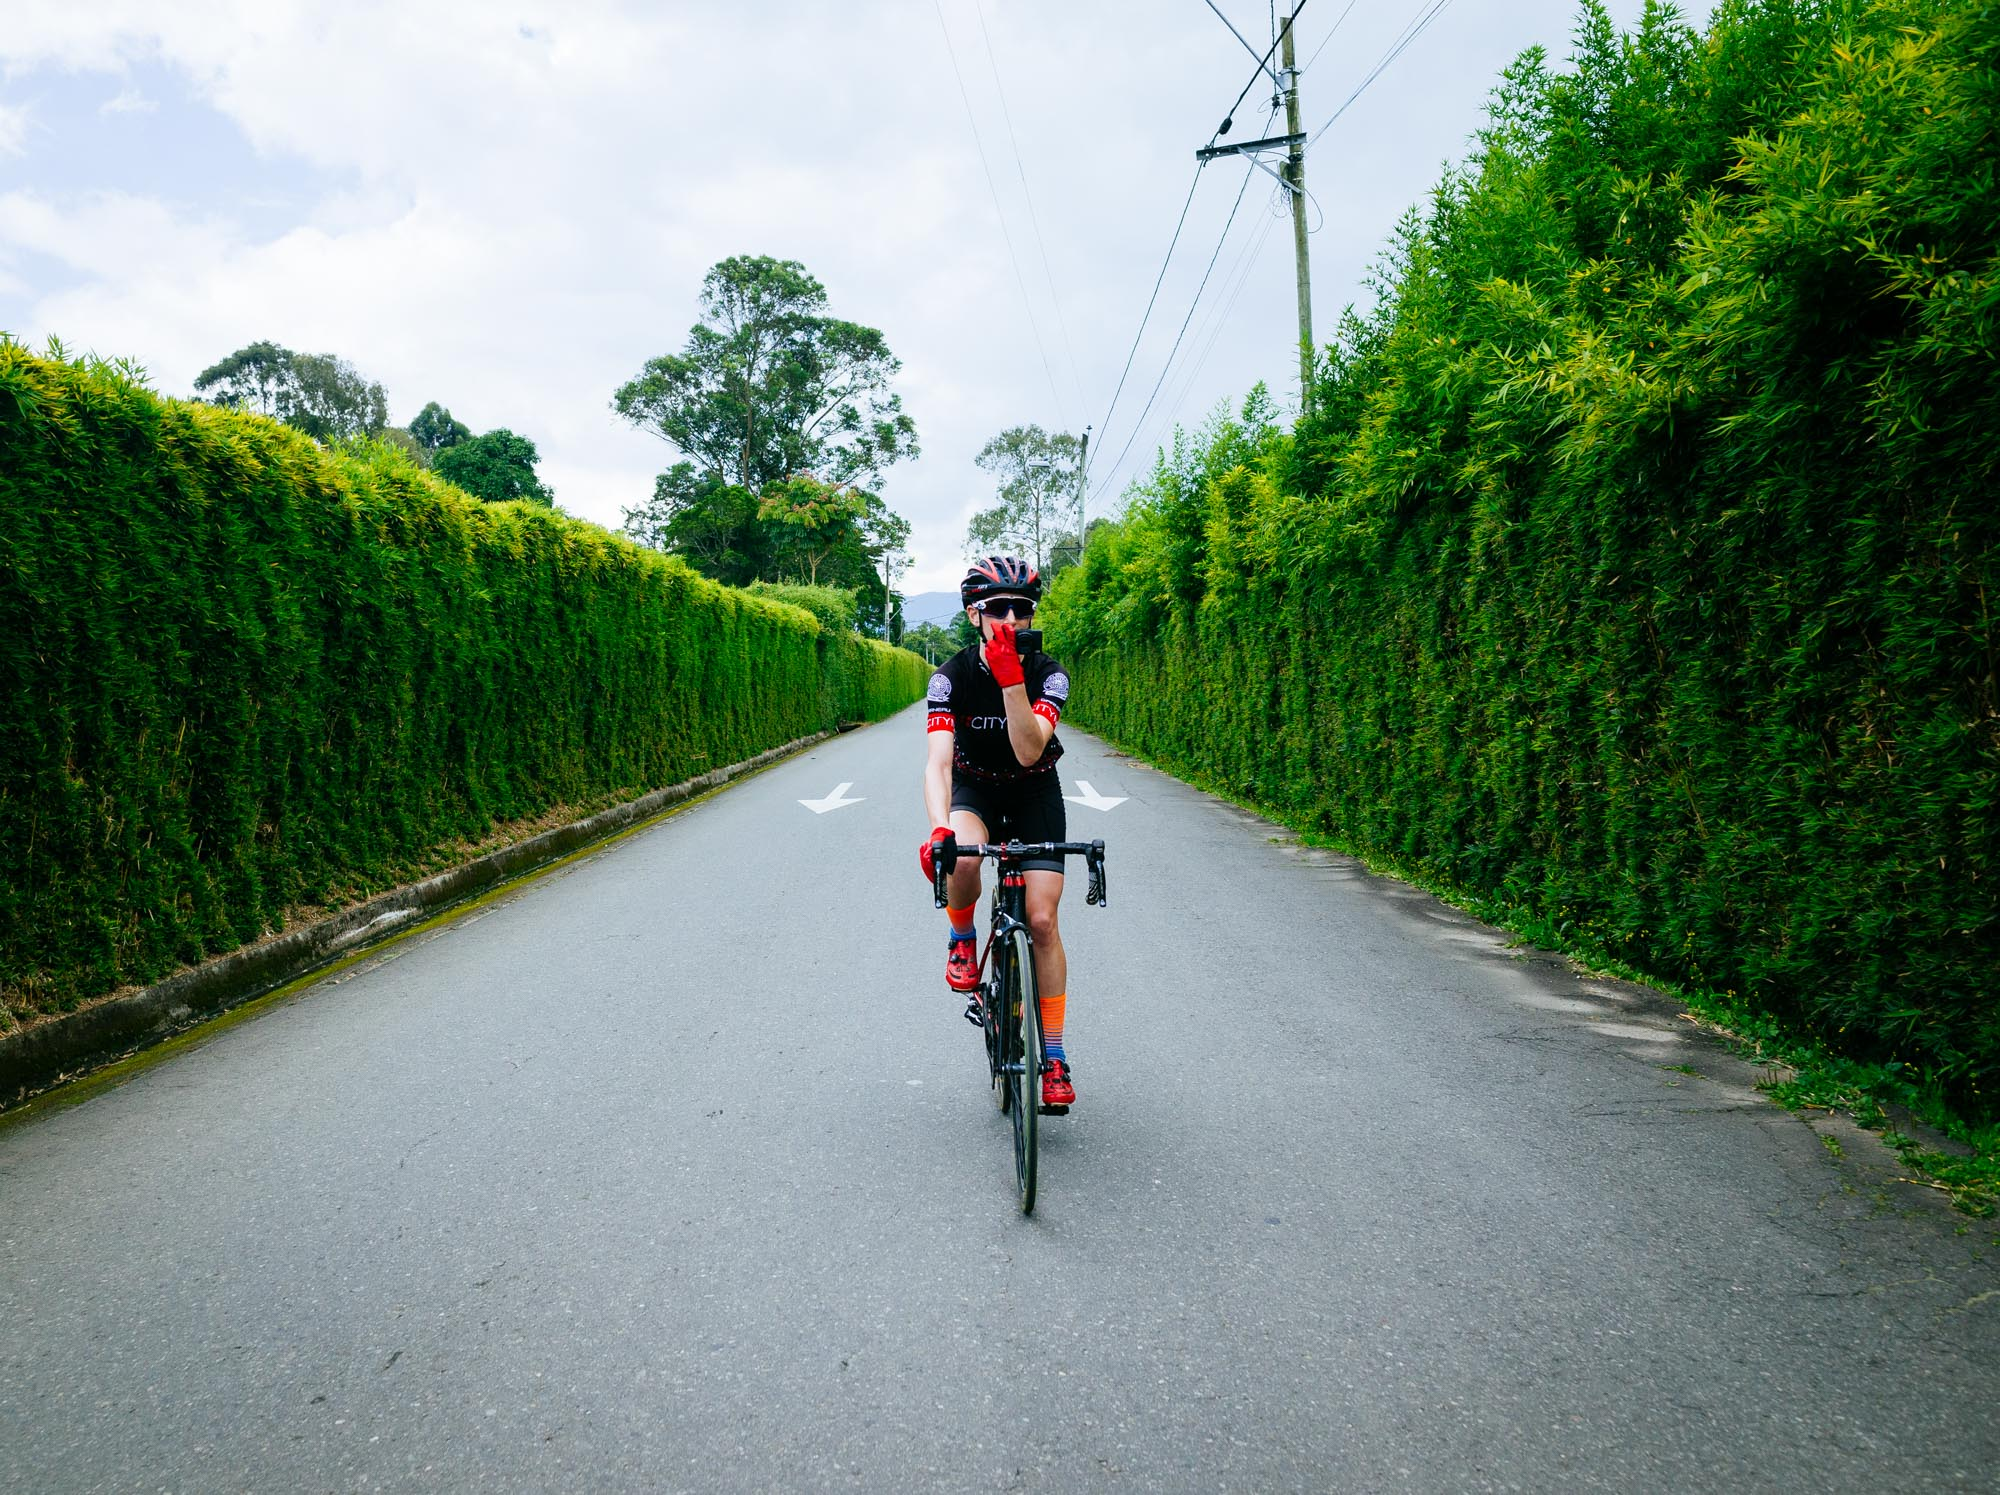 to-be-determined-photo-rhetoric-cycling-in-colombia-1034.jpg